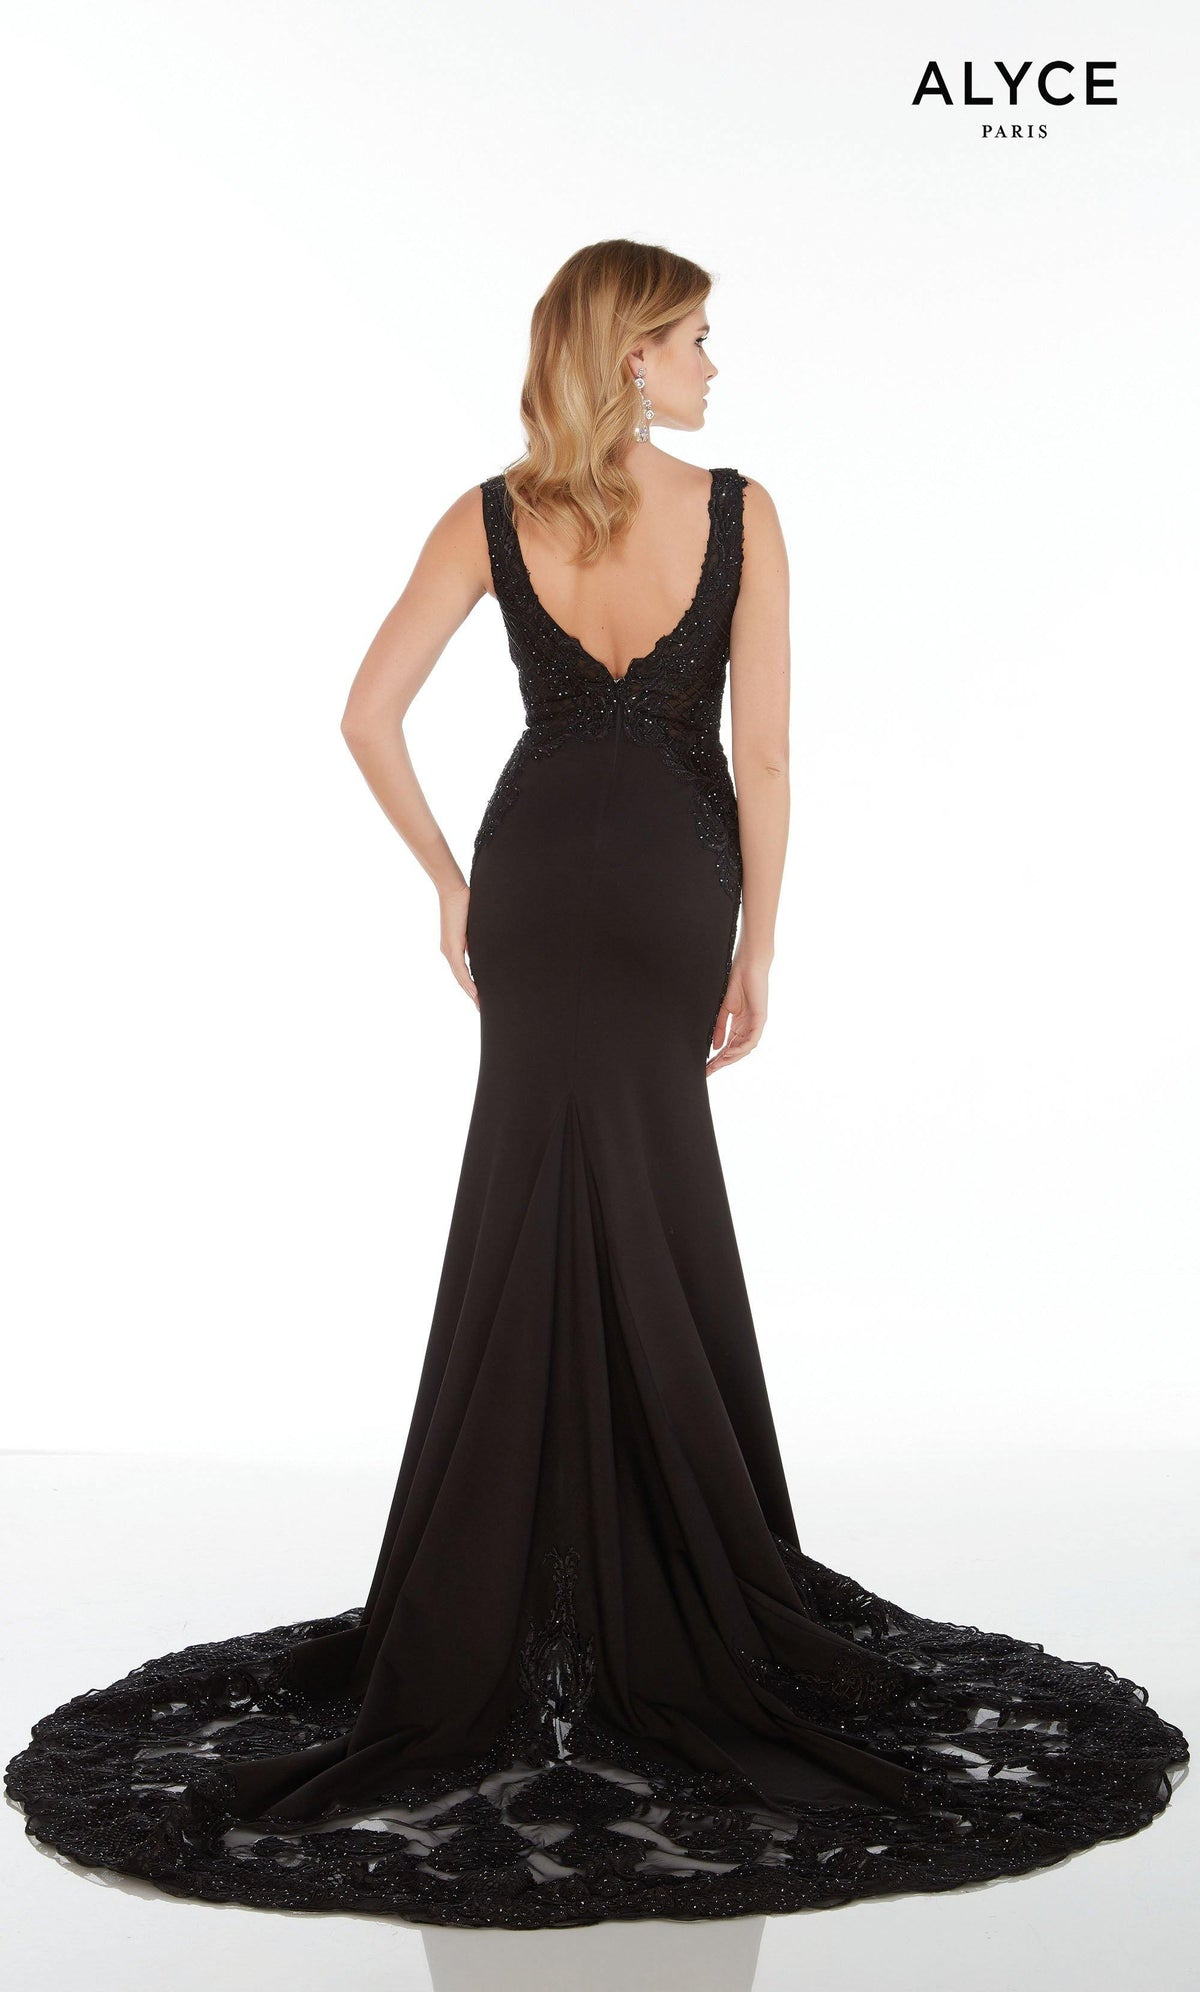 Long Black stretch crepe women's special occasion dress with a V-shaped back, lace detail, and a court train